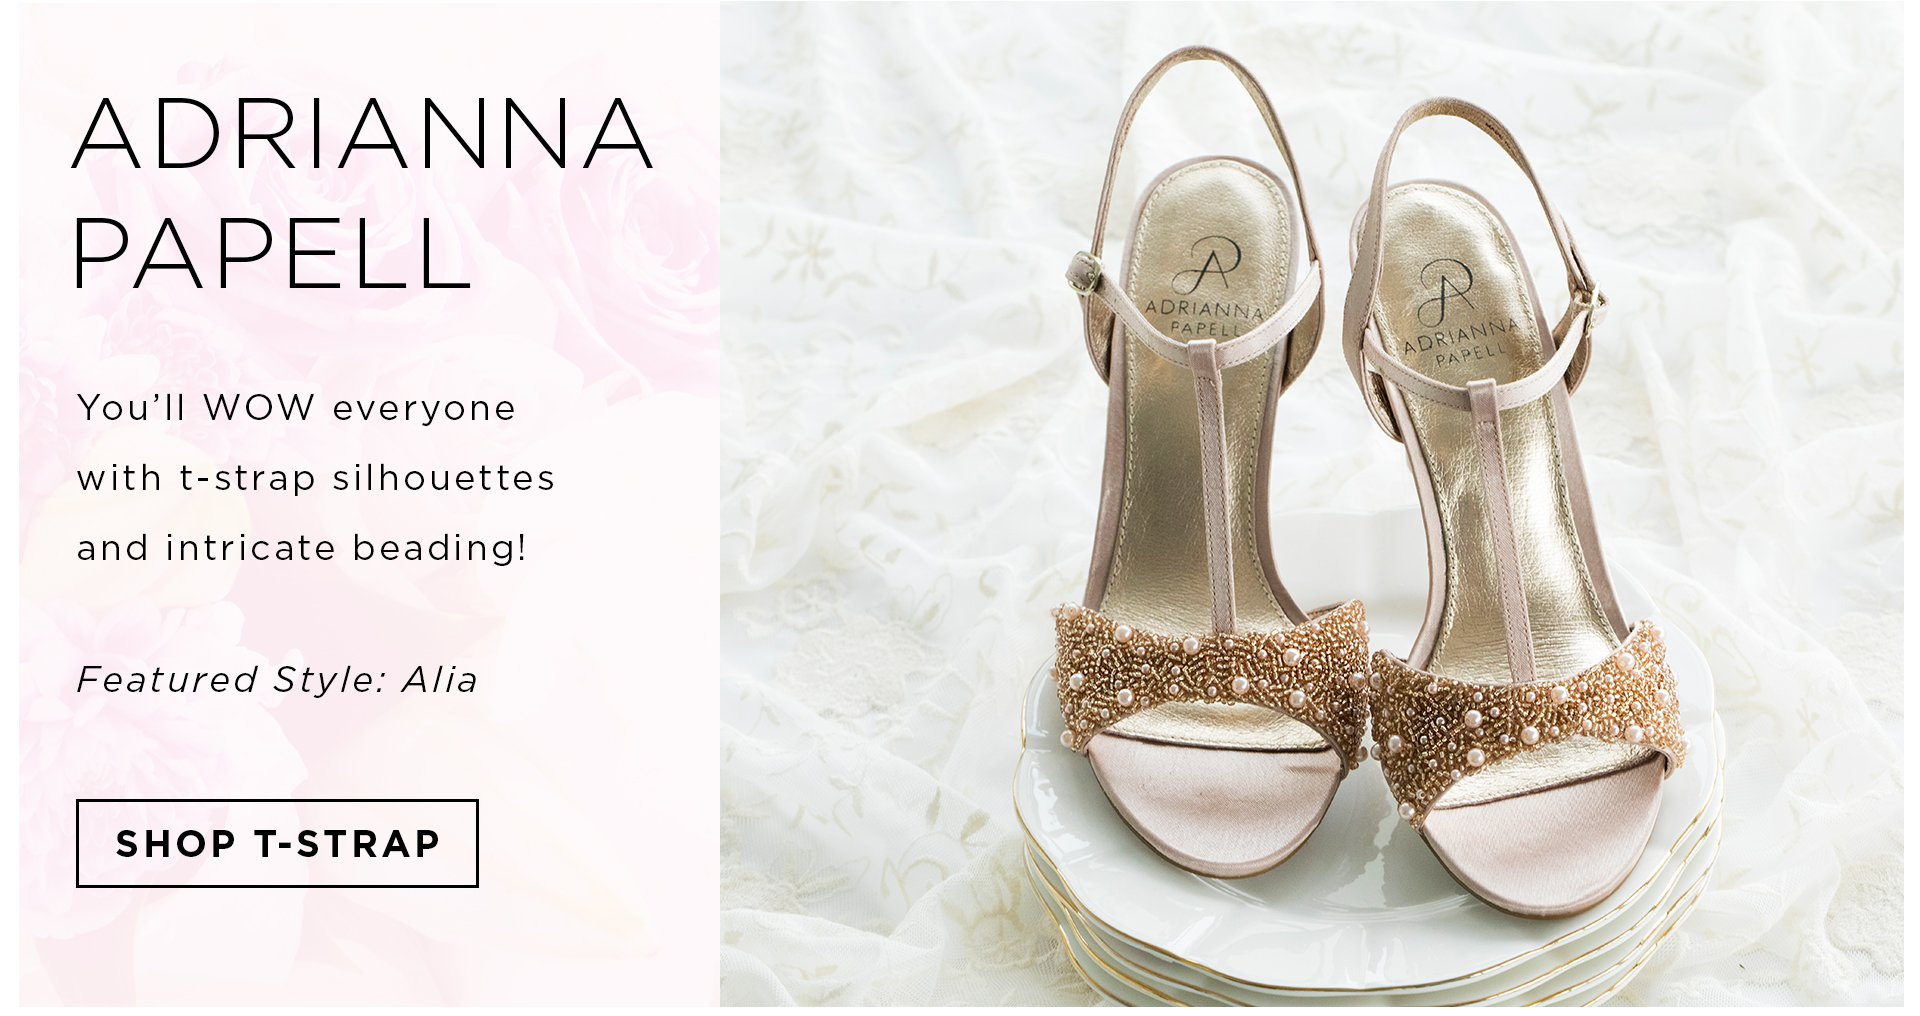 bridal shoes wedding sandals Header Wedding Footwear Favorites Badgley Mischka Shop Nina Adrianna Papell